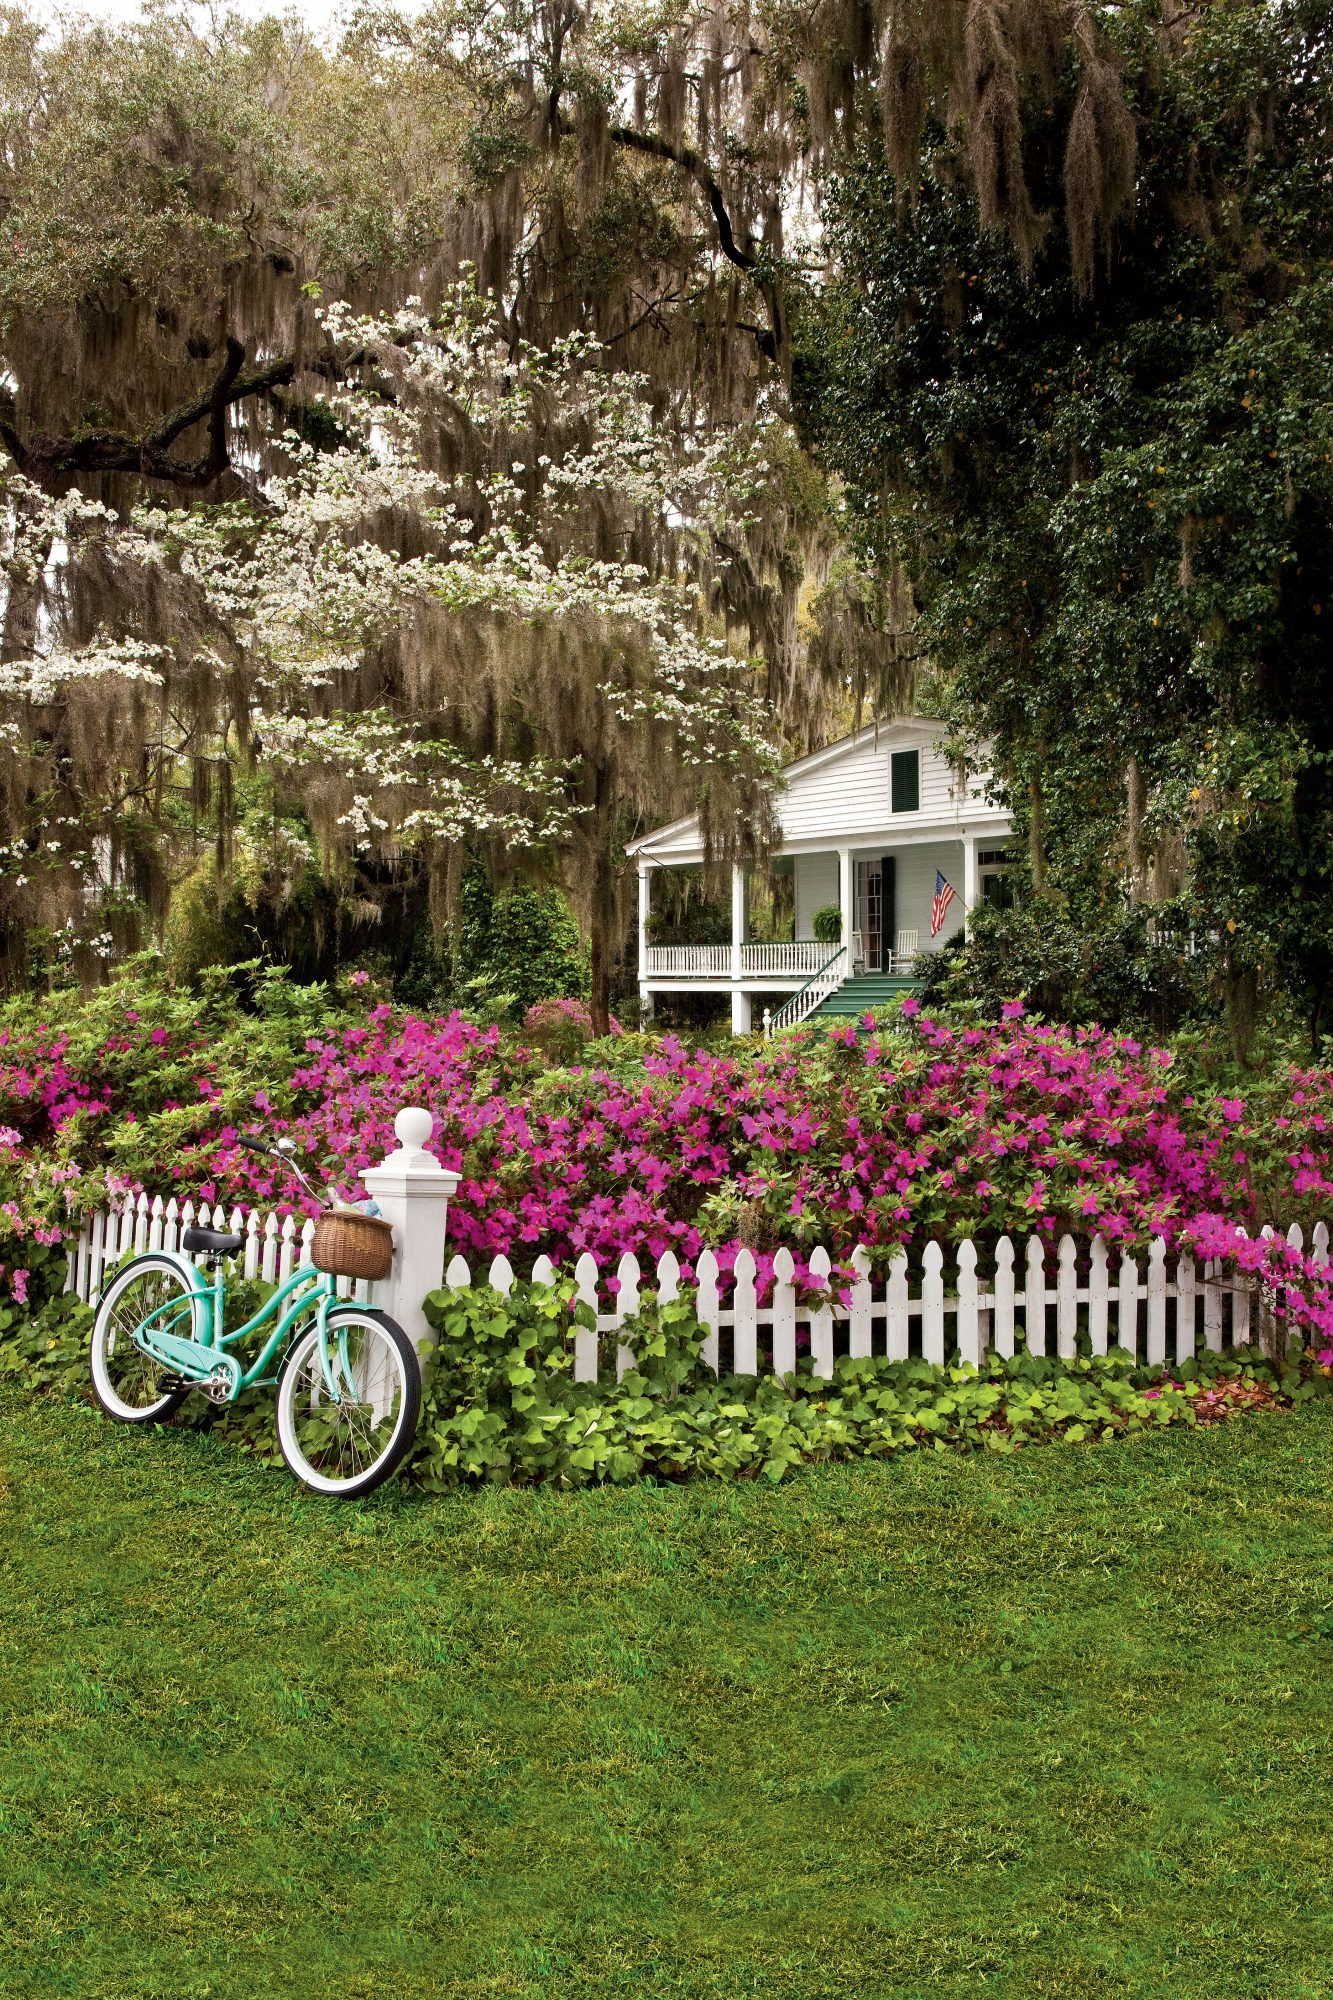 White Picket Fence with Pink Azaleas Blooming and a Teal Bike